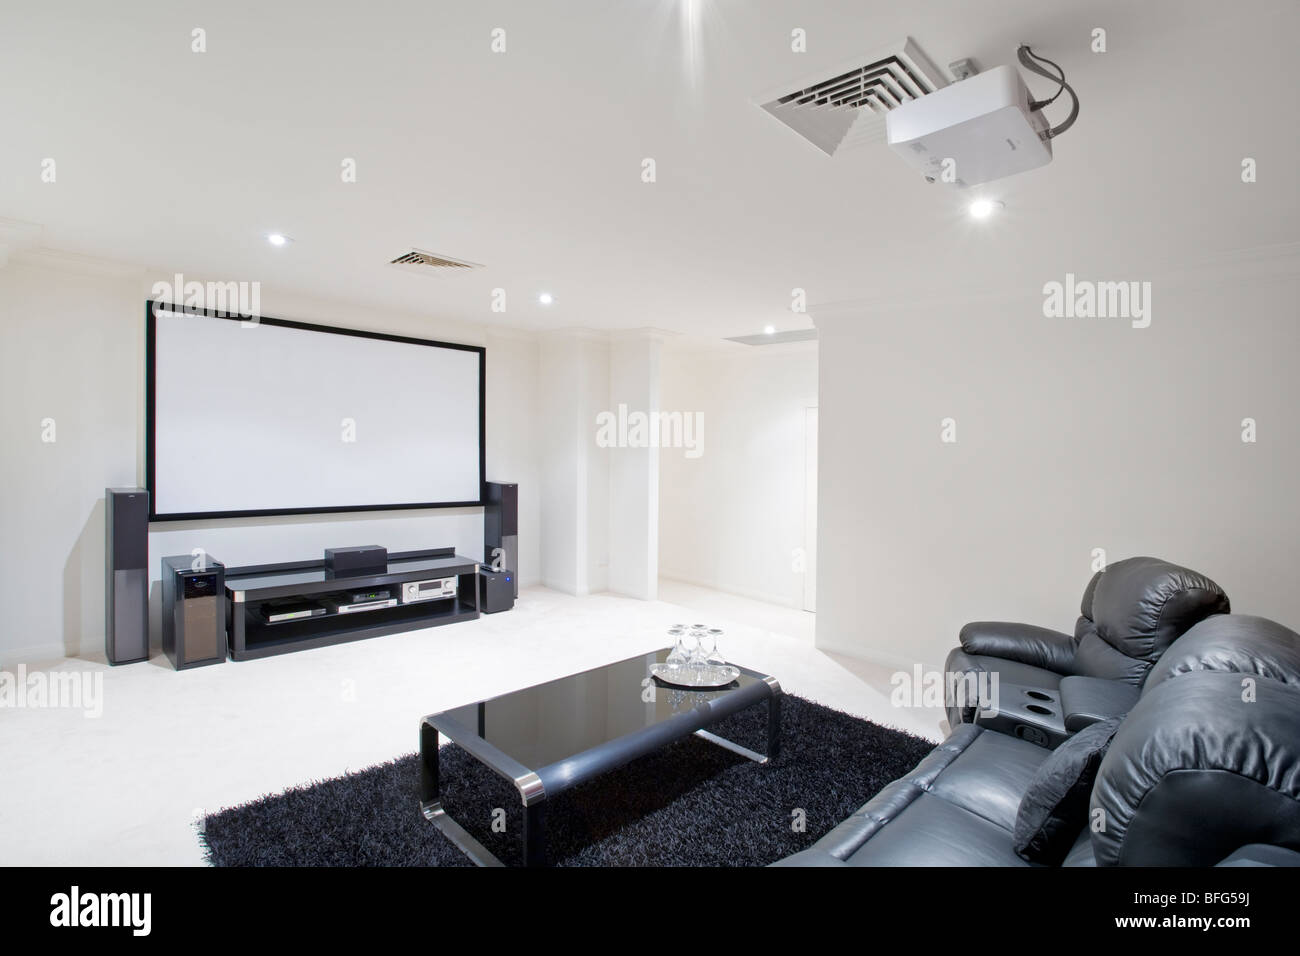 Home Movie Theater Stock Photos & Home Movie Theater Stock Images ...